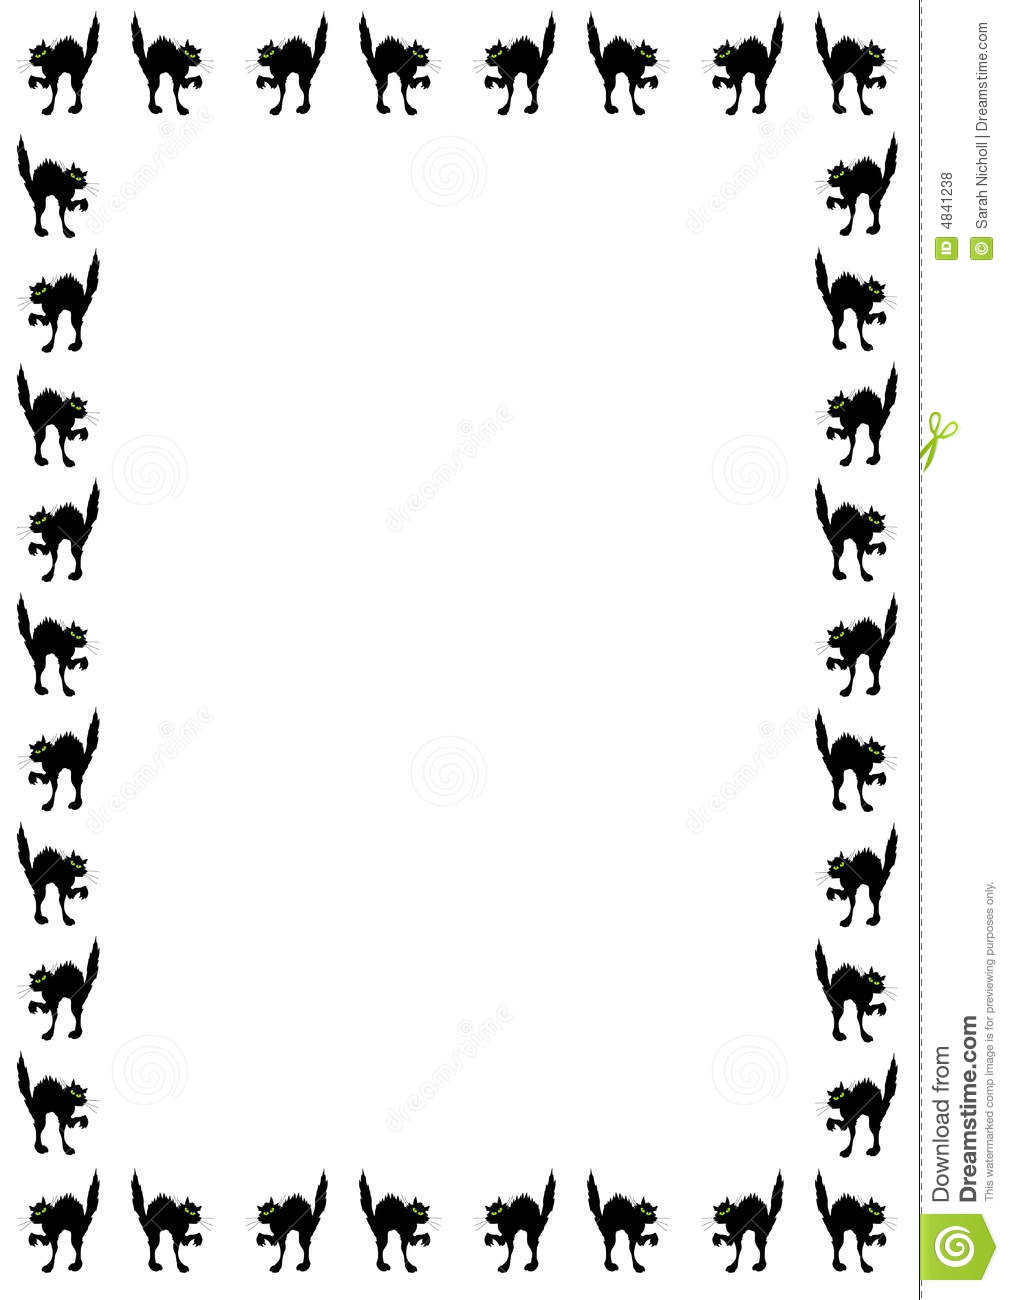 1009x1300 Halloween Border Clipart Black And White